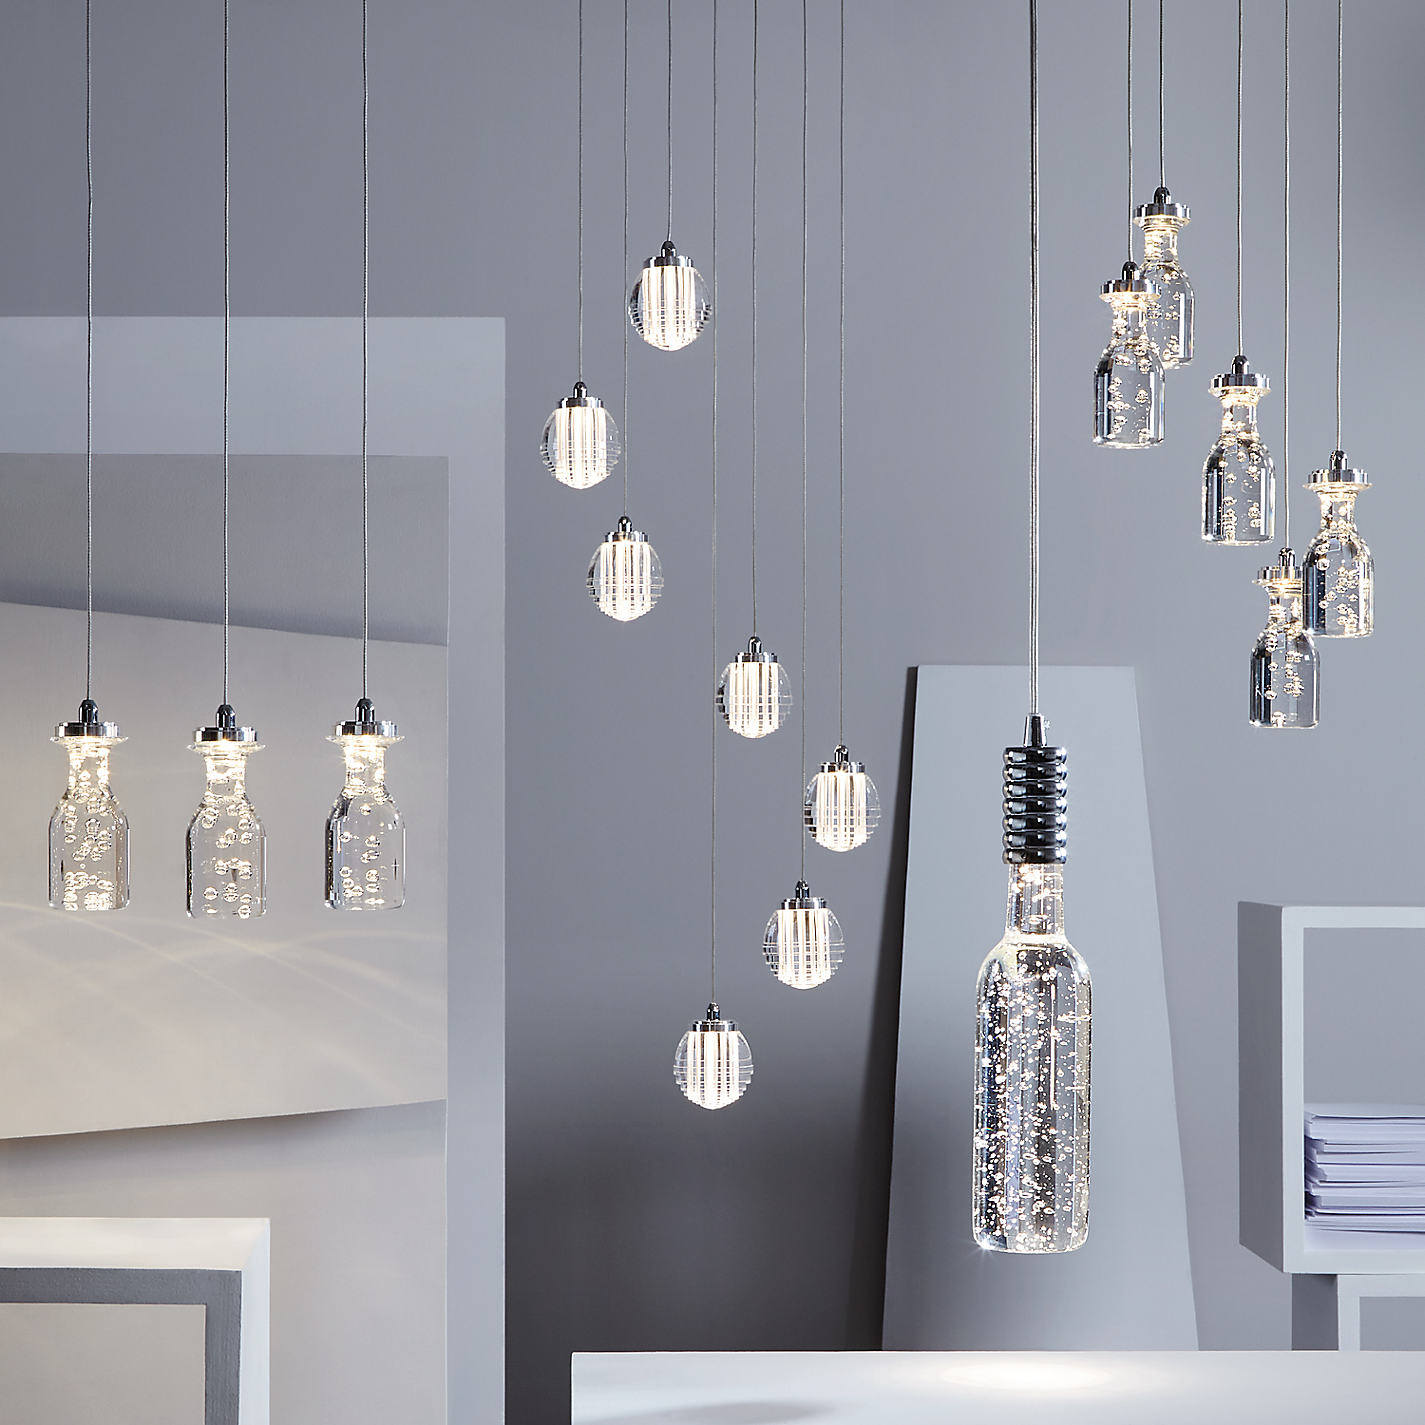 Buy john lewis giovanni bubble 5 cluster ceiling light john lewis buy john lewis giovanni bubble 5 cluster ceiling light online at johnlewis aloadofball Gallery